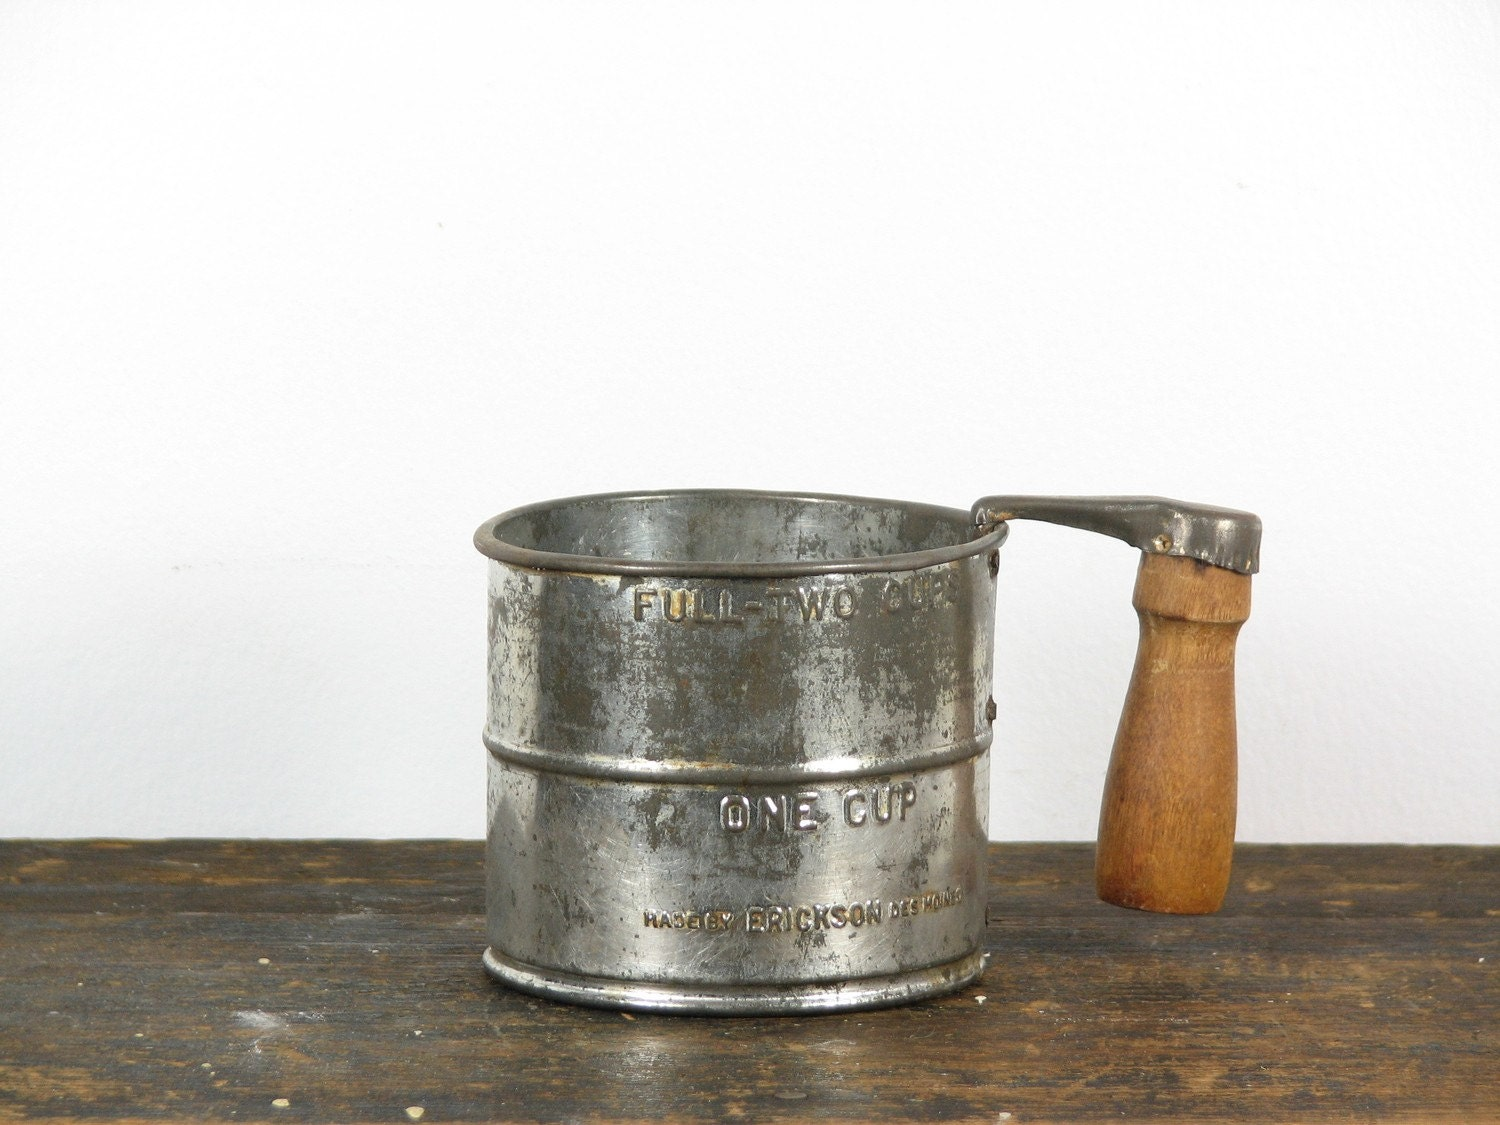 flour sifter - photo #19